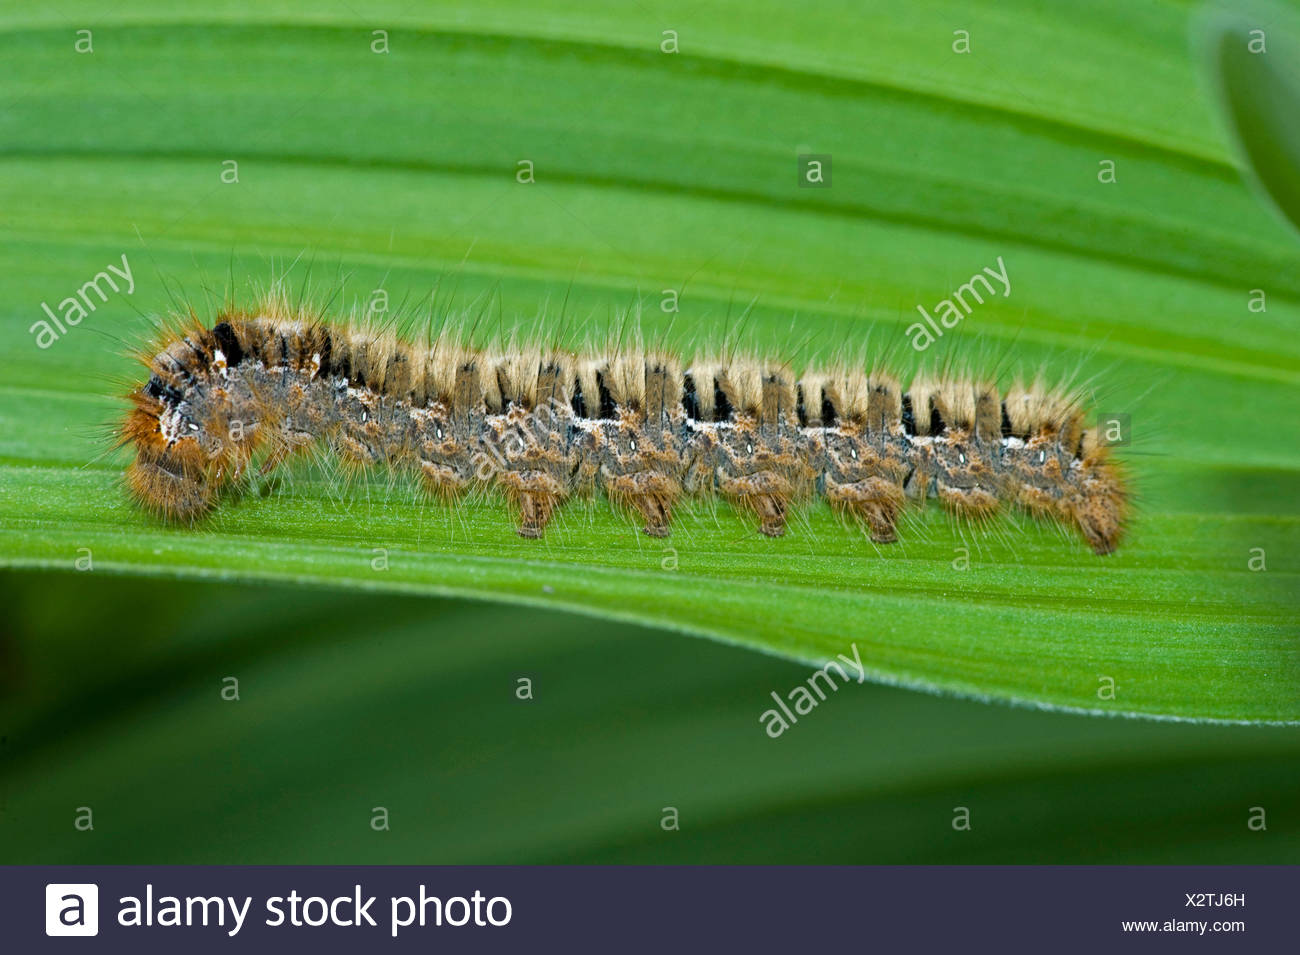 oak eggar (Lasiocampa quercus), caterpillar on leaf, Switzerland, Bernese Oberland - Stock Image